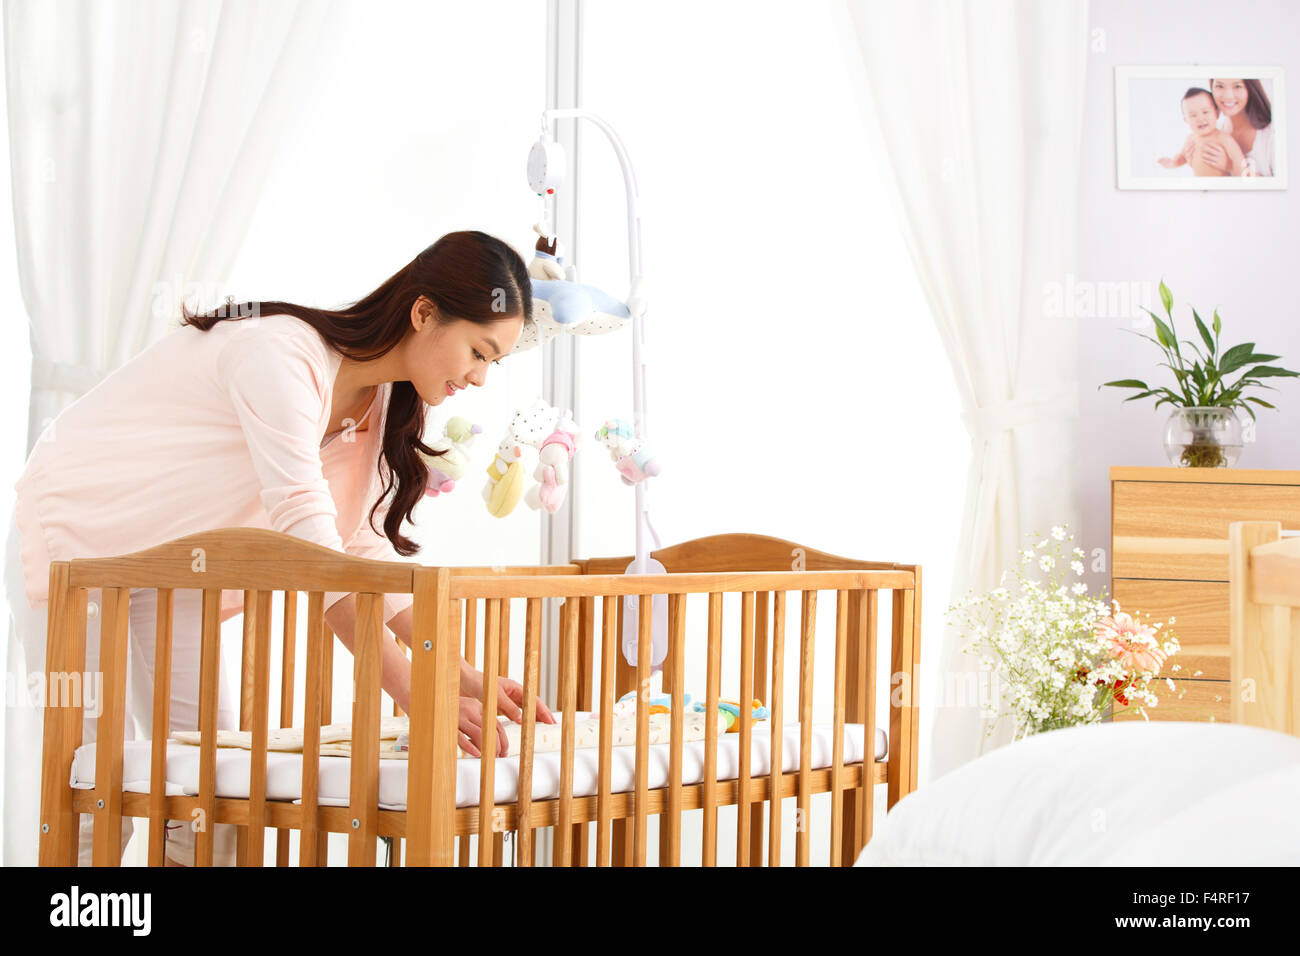 Young mother to organize baby clothes - Stock Image